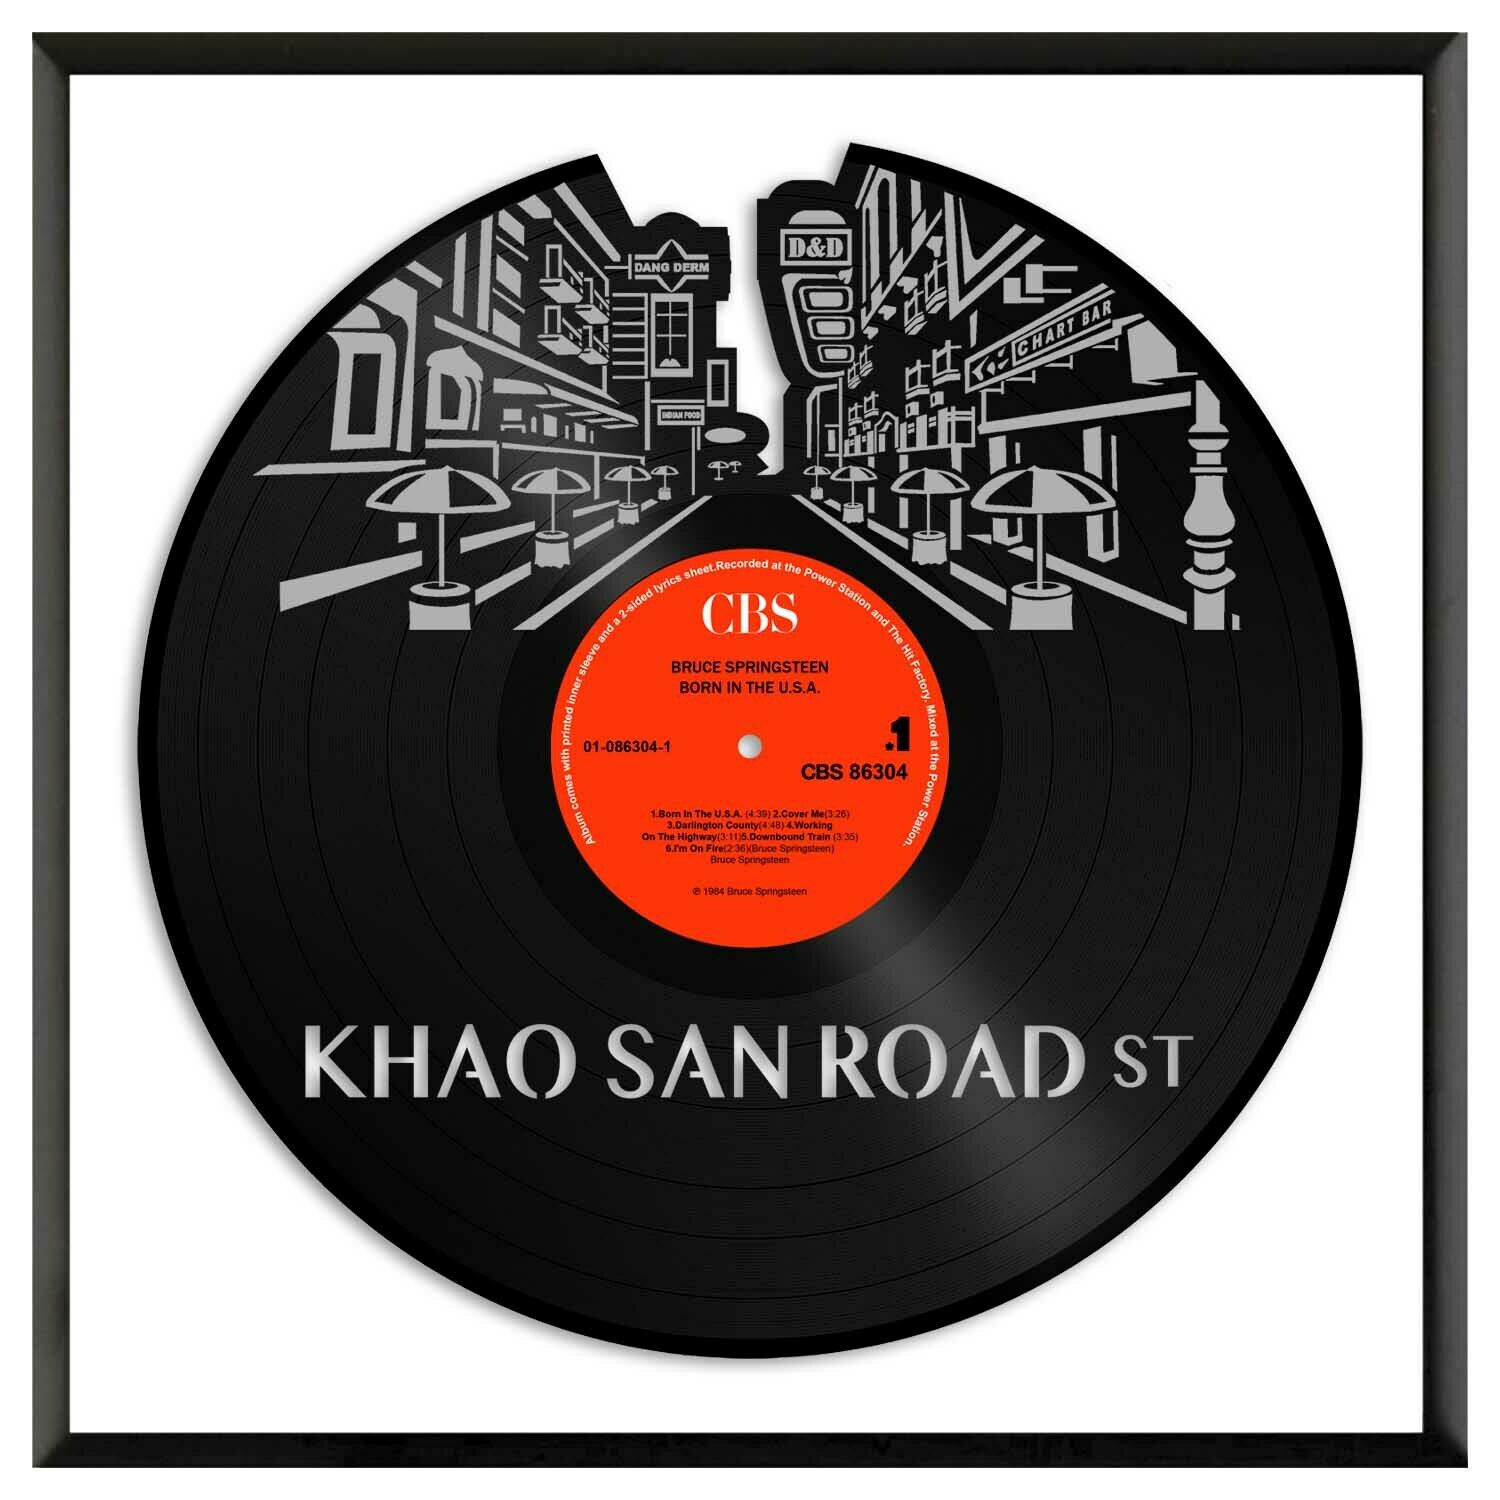 Khao San Road ST Vinyl Wall Art Exclusive Gift for Friends Home Decor Framed